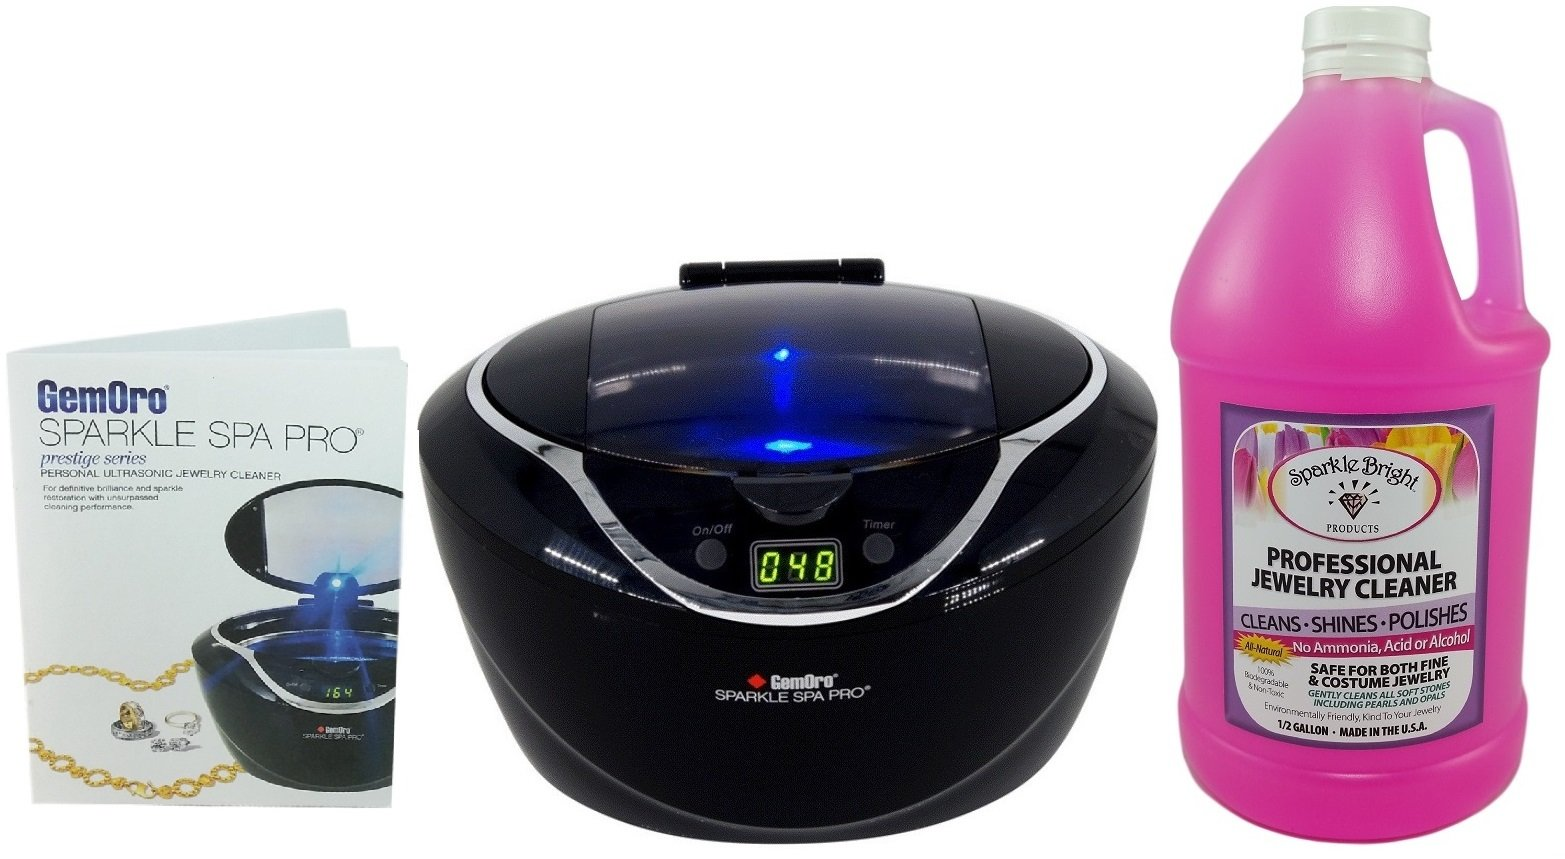 GEMORO 1790 SPARKLE SPA PRO BLACK ULTRASONIC JEWELRY CLEANING KIT Includes Sparkle Bright All-Natural Jewelry Cleaner, Half Gallon Liquid